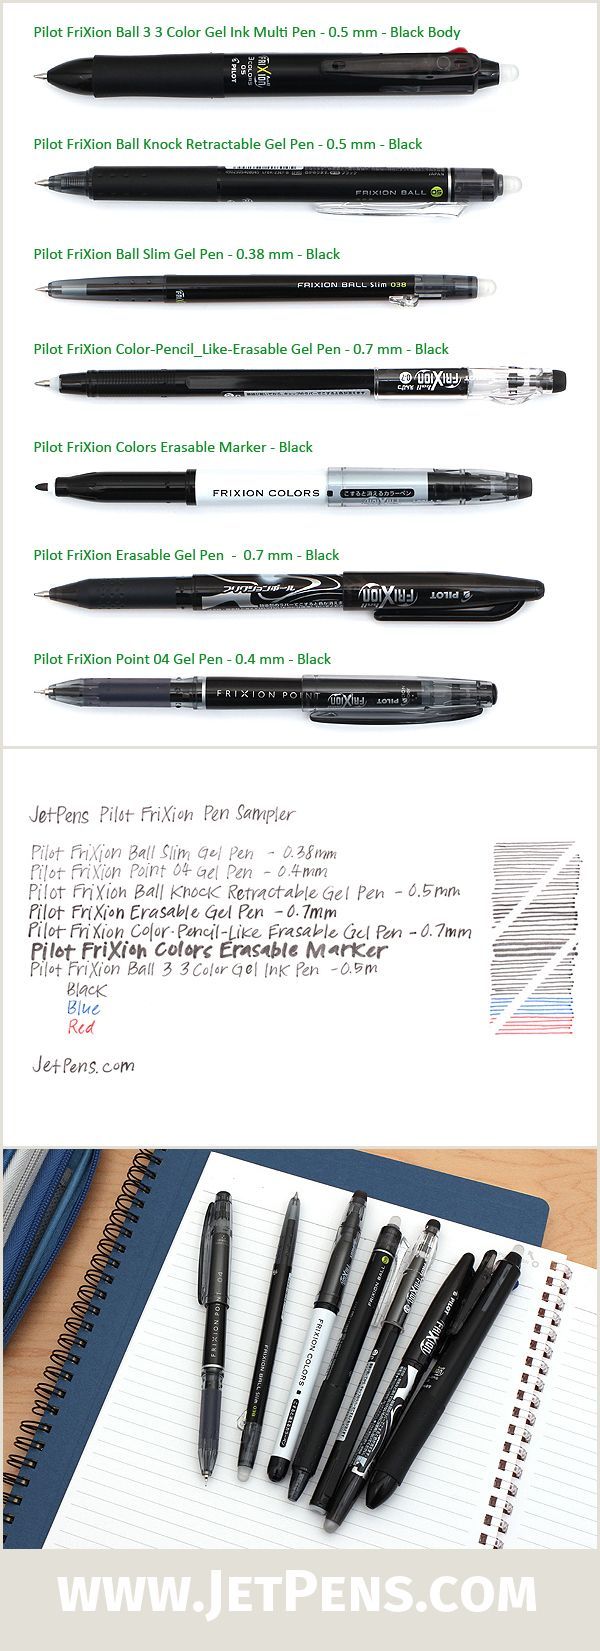 Our JetPens Pilot FriXion Pen Sampler features a variety of our favorite erasable FriXion pens!